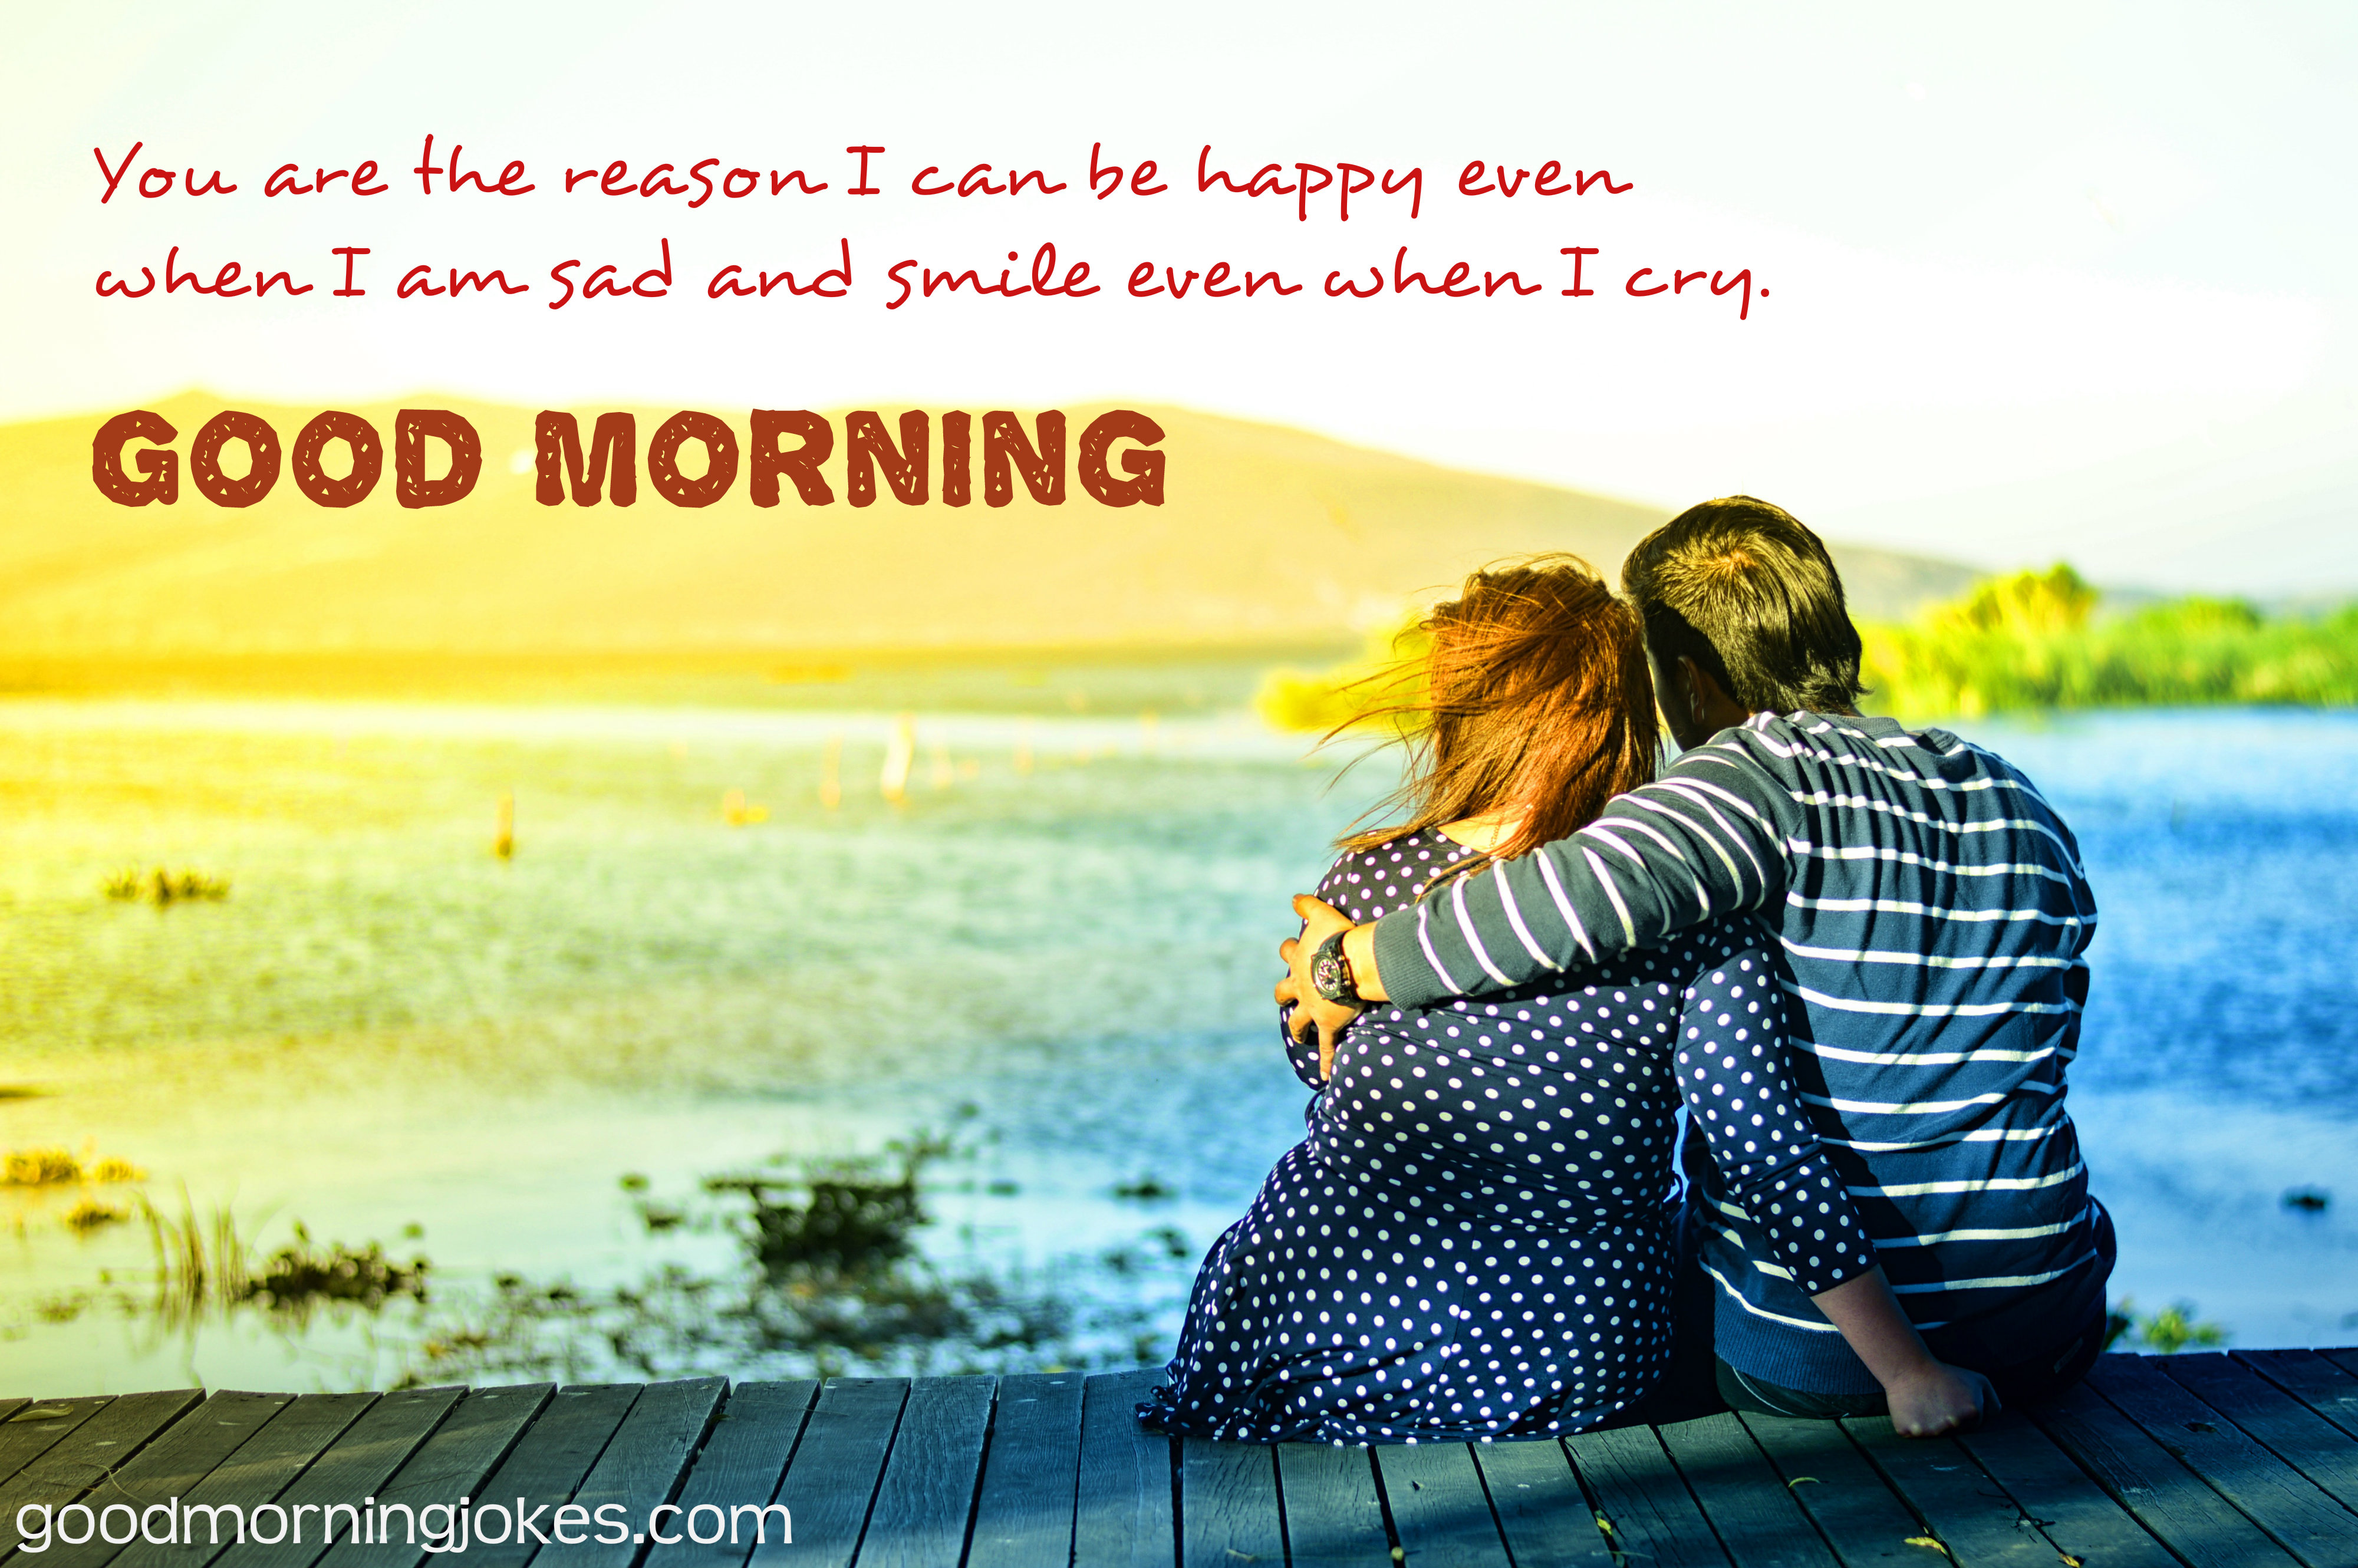 Good Morning Greetings For Dearest Wife Nicewishes